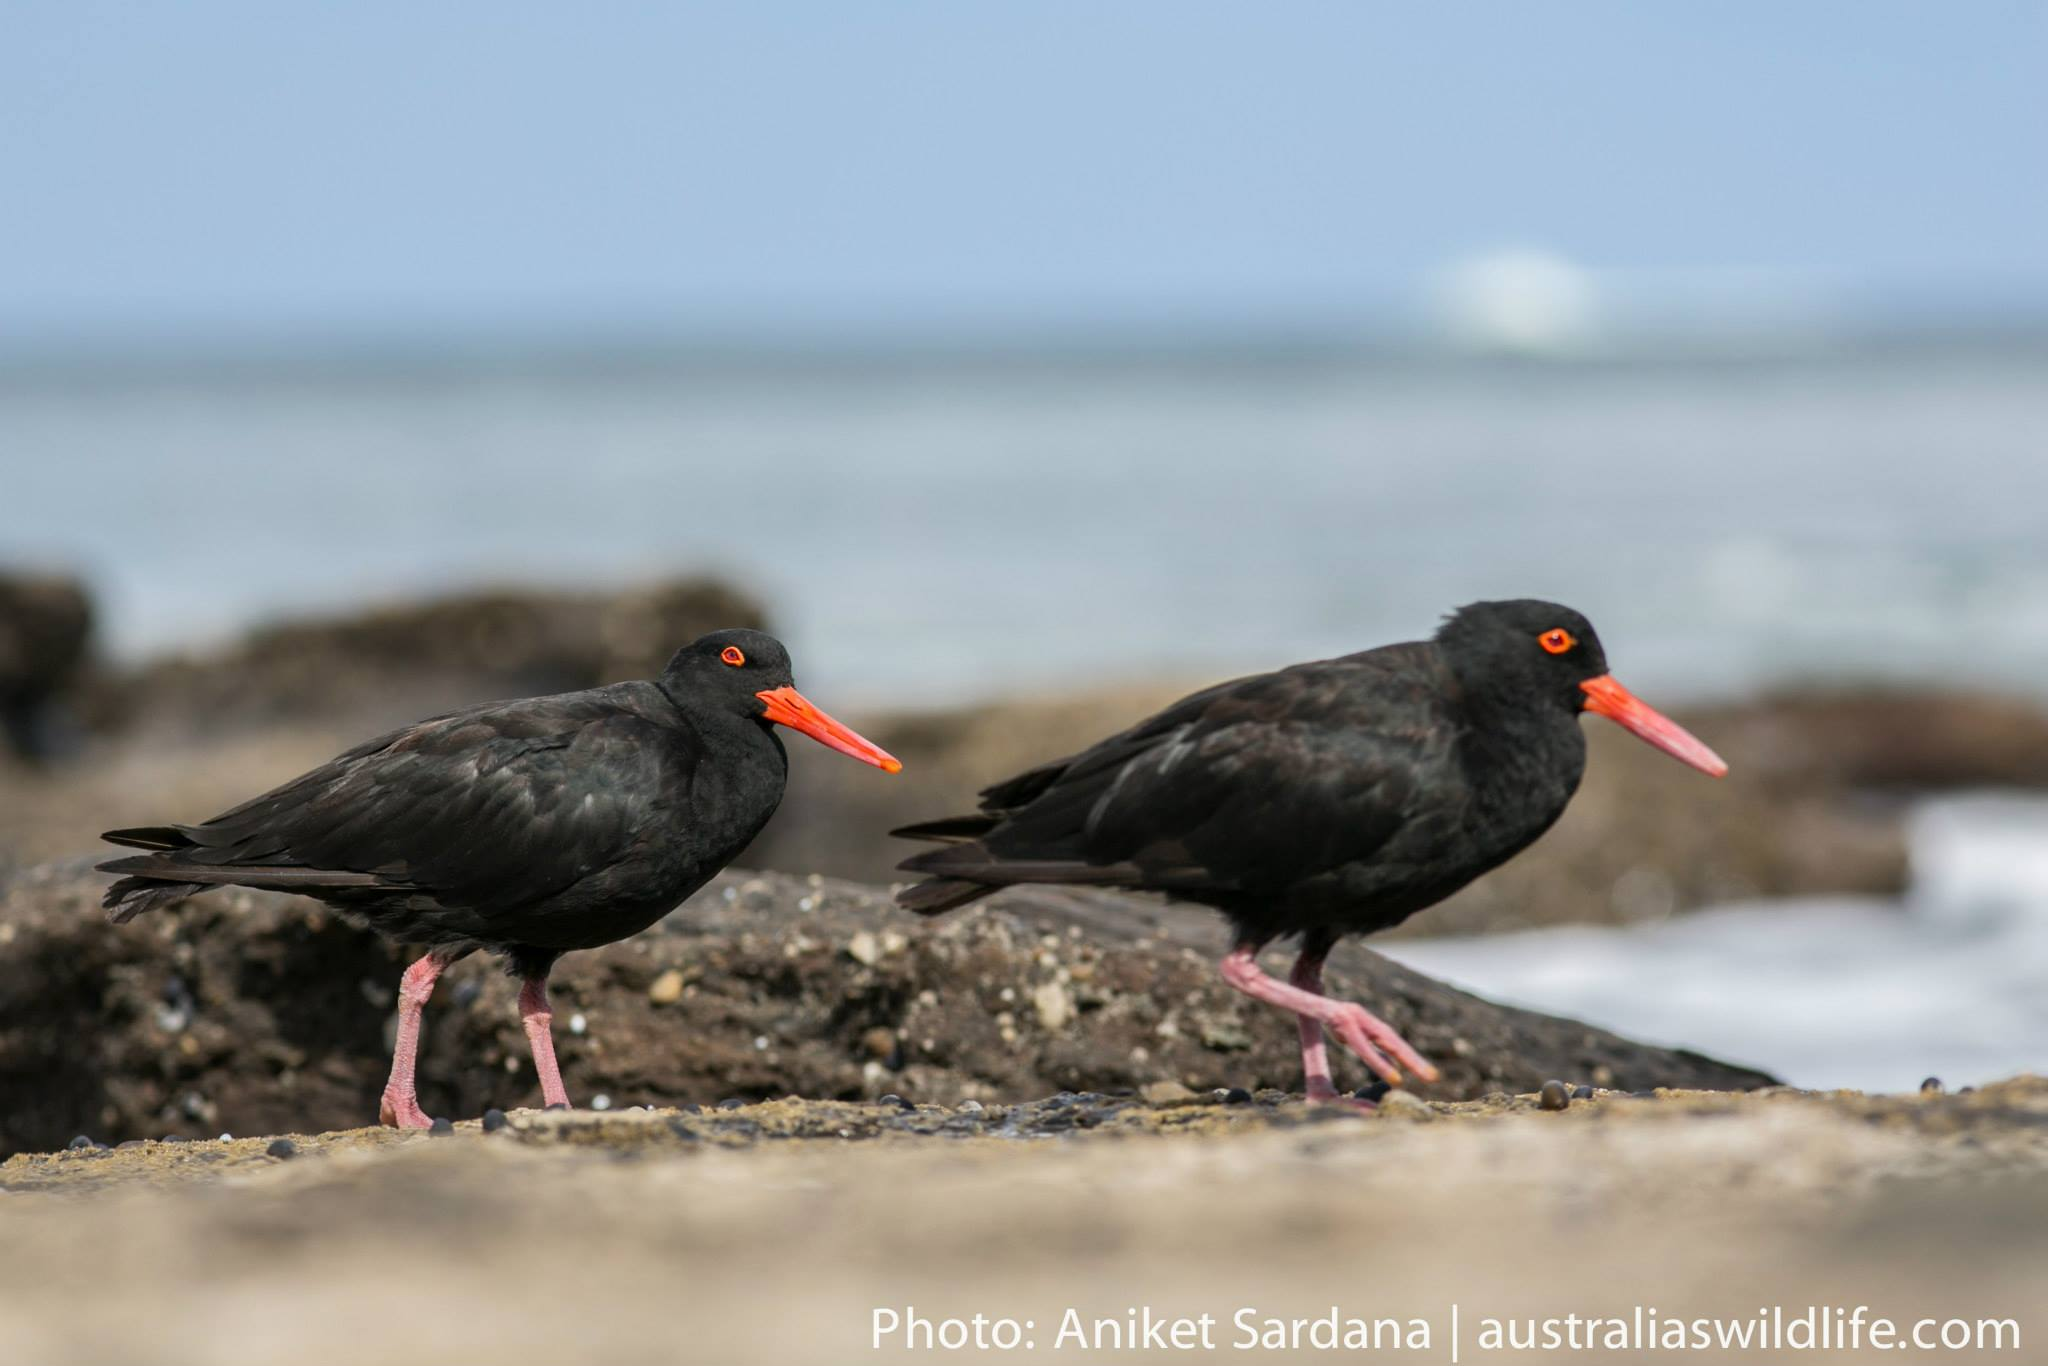 A pair of Sooty Oystercatchers on a rock